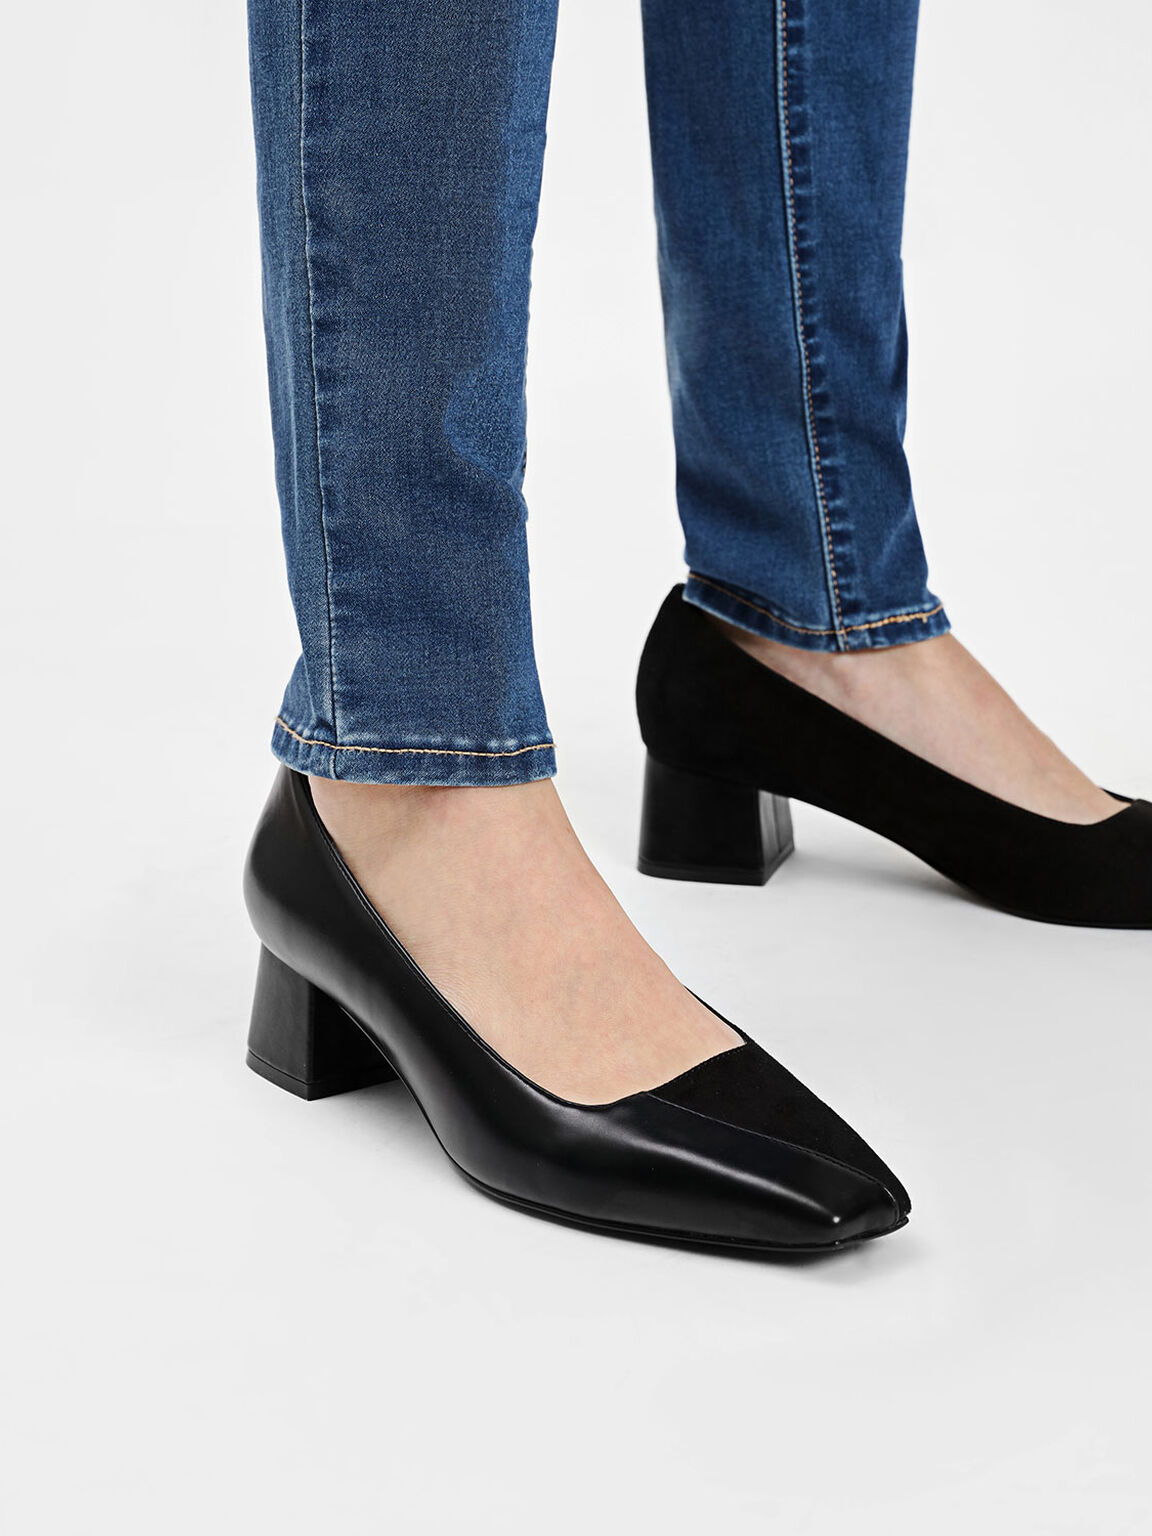 Trapeze Heel Pumps, Black, hi-res